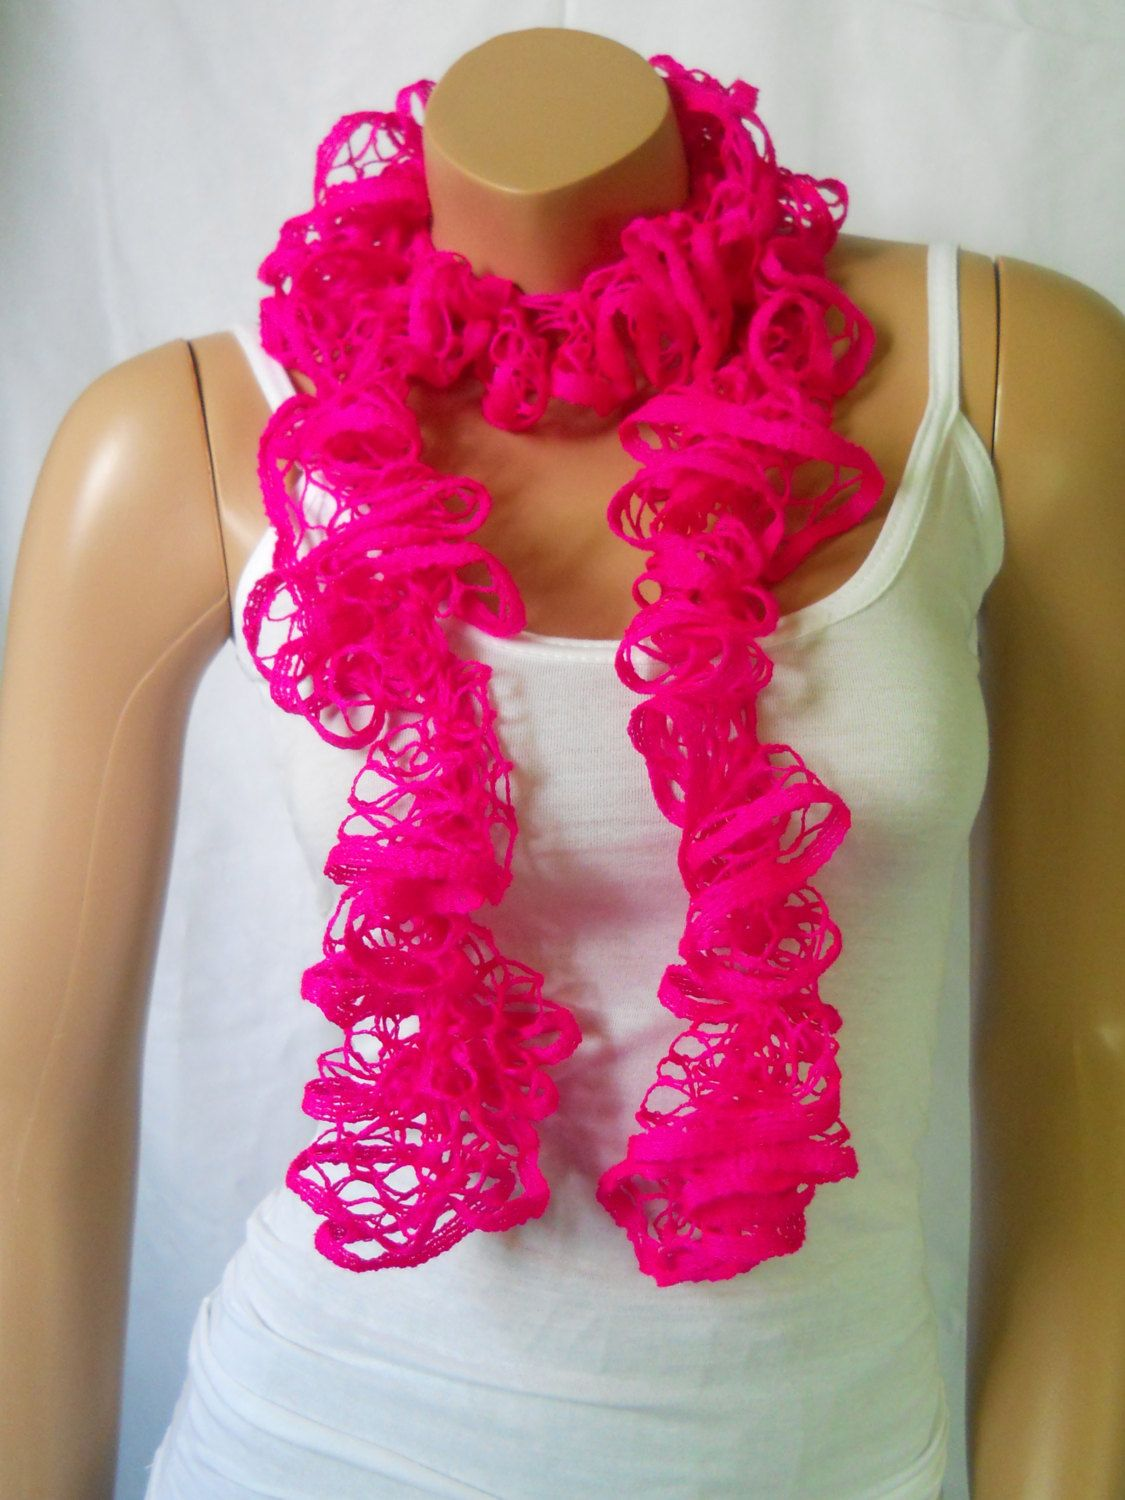 The Neon Pink ruffle scarf,womens scarf,fashion accessories,spring trend,gift for her,new petite option, great for all teens,girls,adults by HappyTygerApparel on Etsy